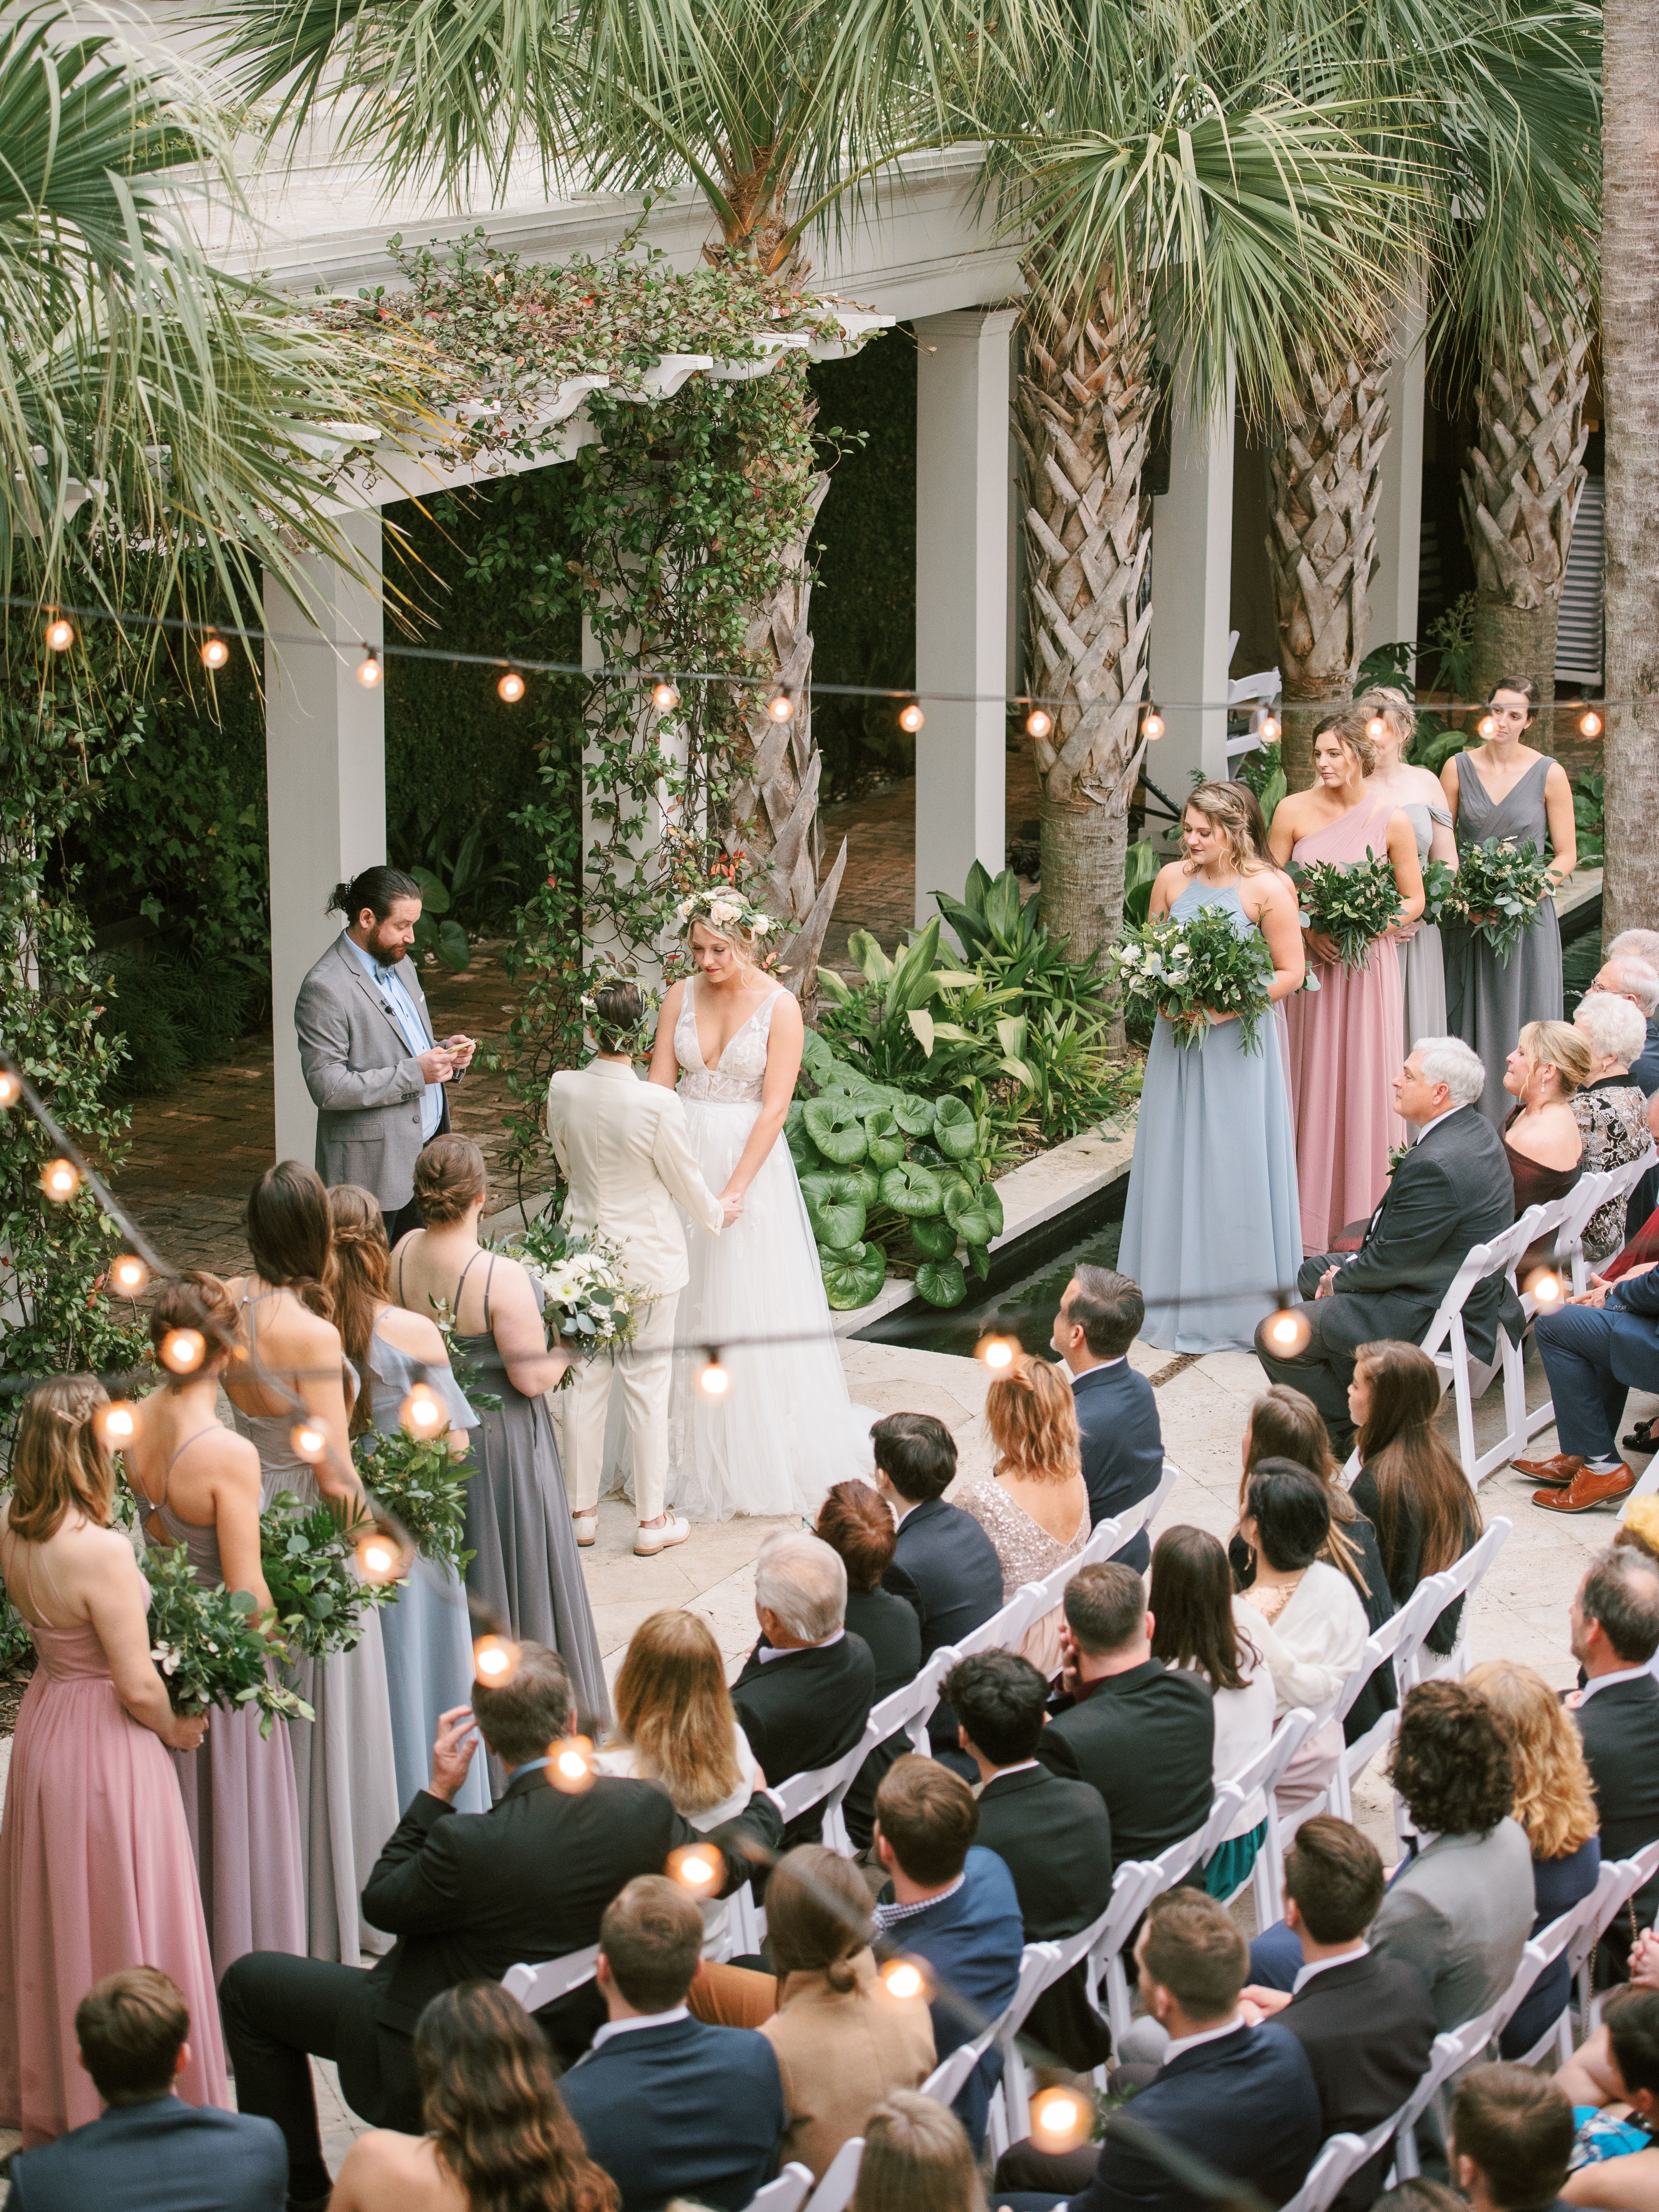 Photo of Courtyard ceremony at Cannon Green